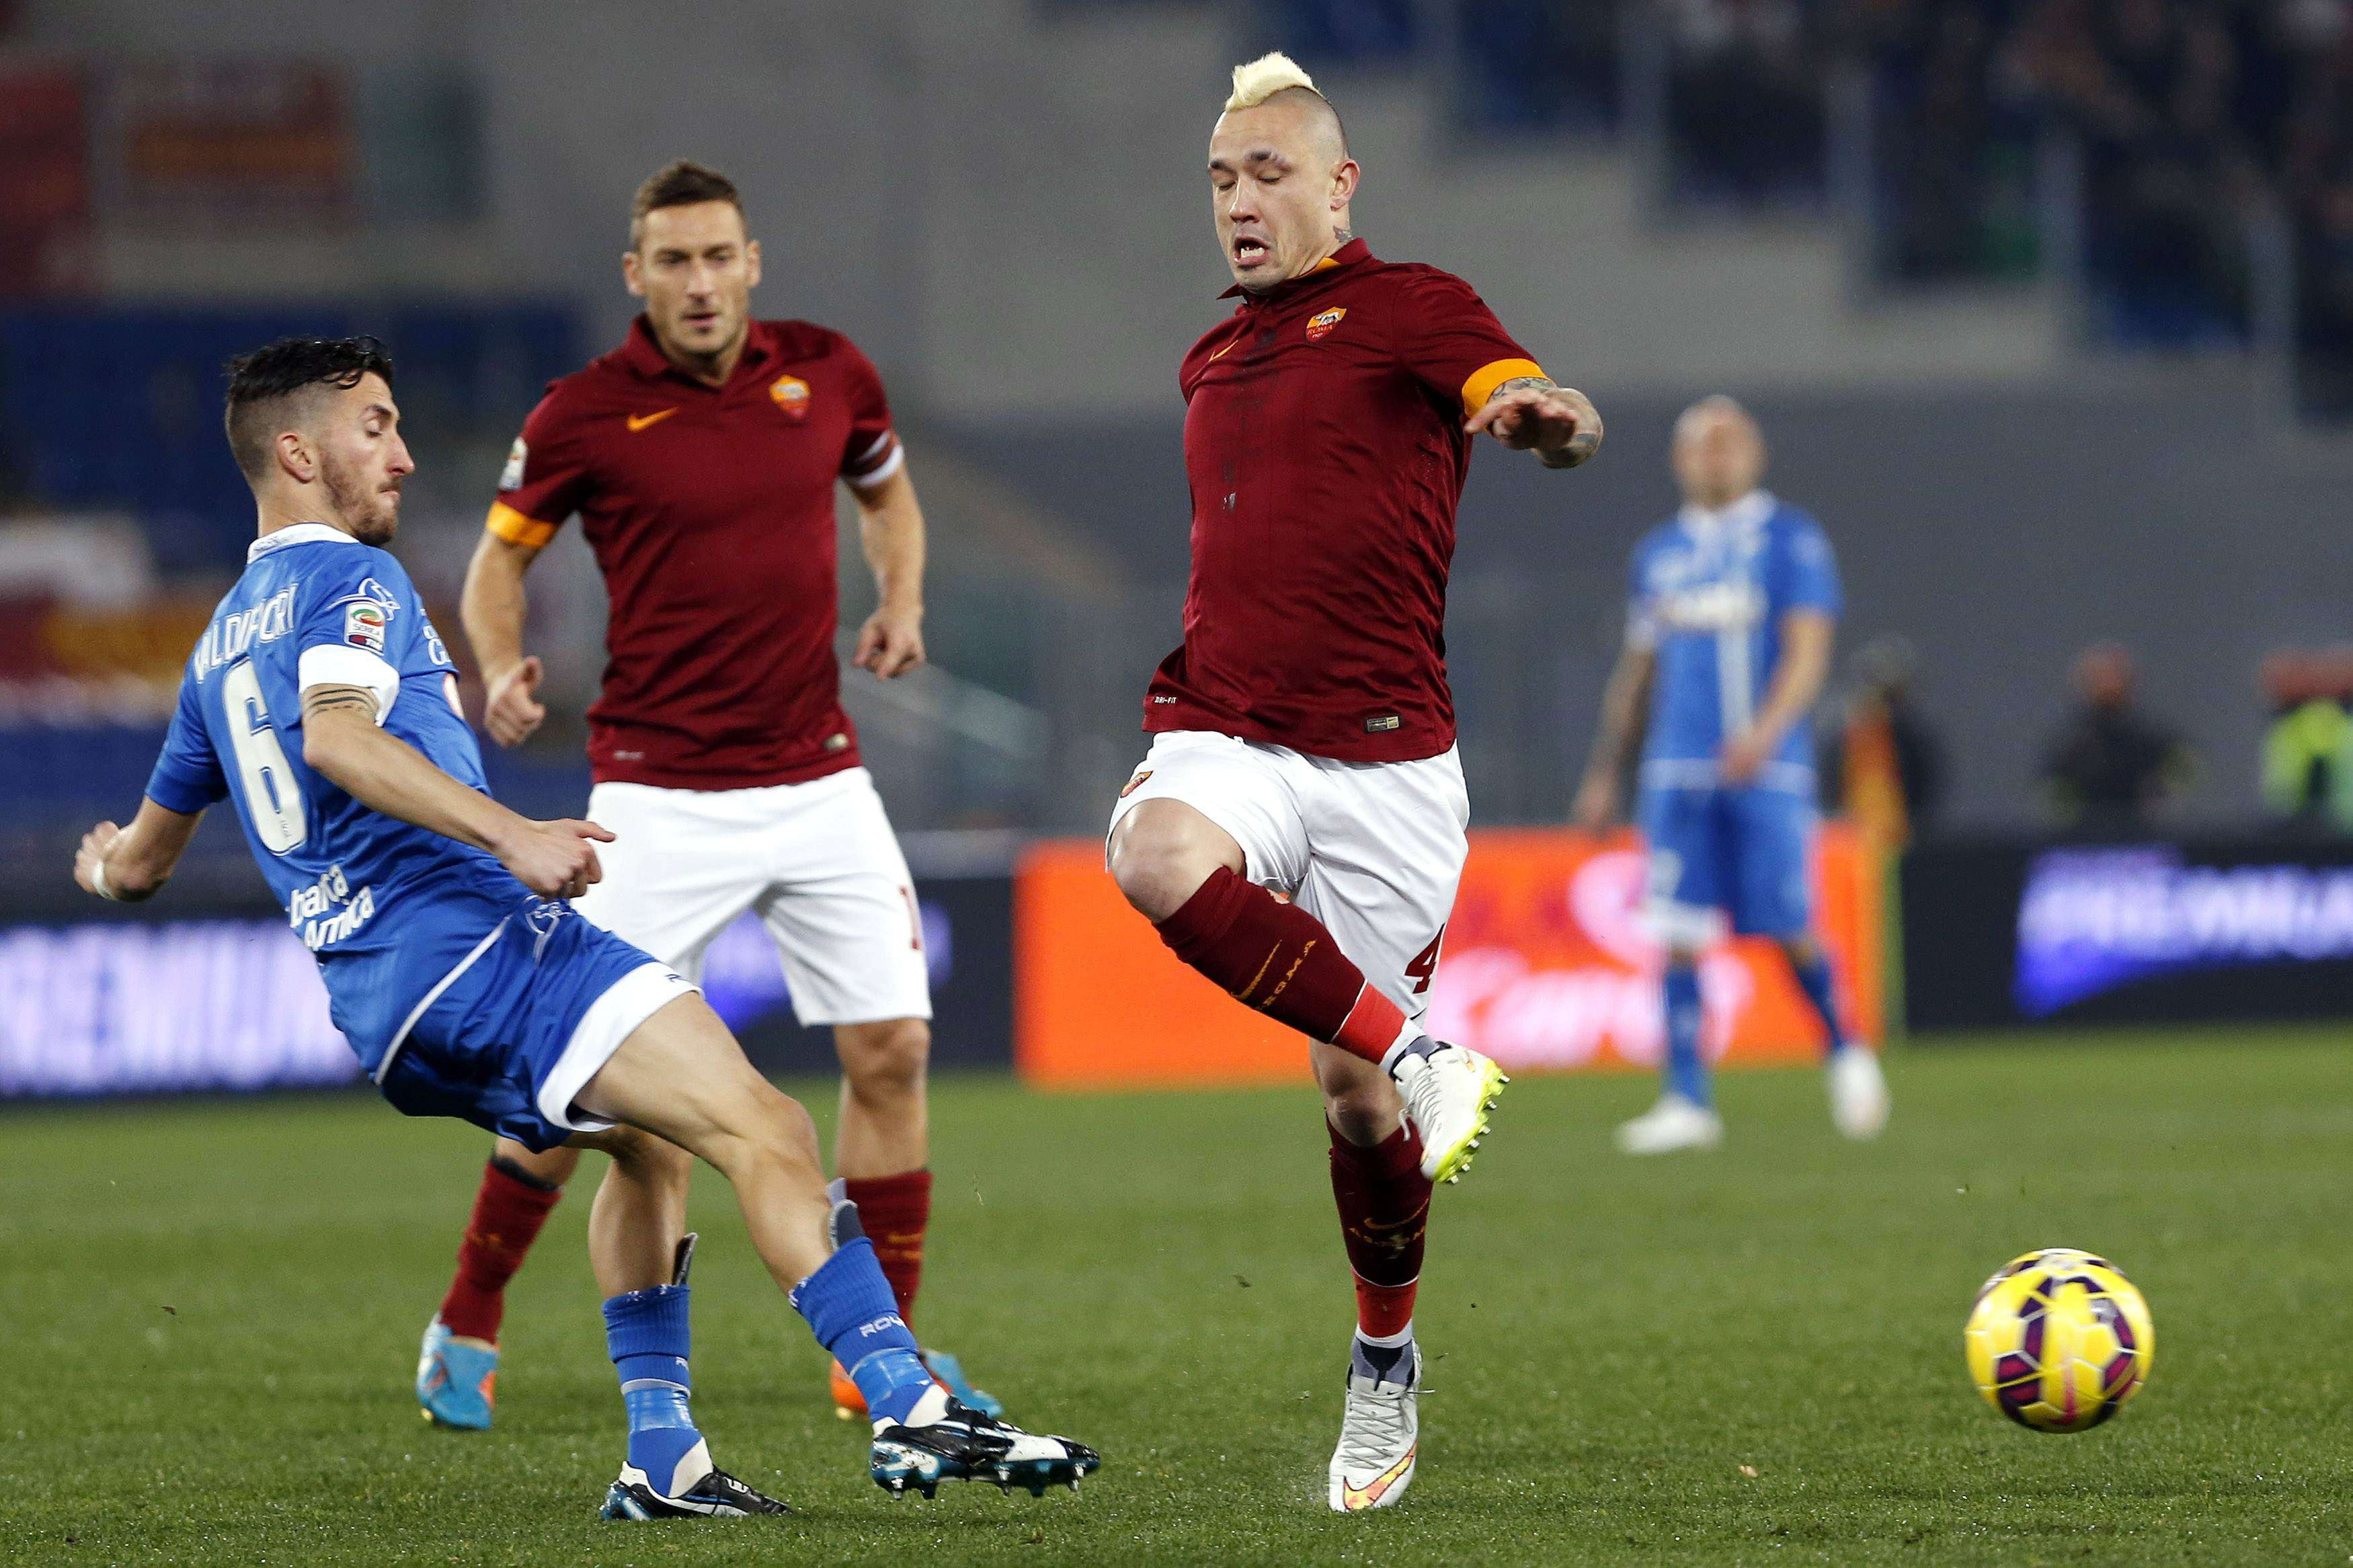 Empoli's Mirko Valdifiori (L) challenges AS Roma's Radja Nainggolan during their Italian Serie A soccer match at the Olympic stadium in Rome January 31, 2015. REUTERS/Giampiero Sposito (ITALY - Tags: SPORT SOCCER) Foto: GIAMPIERO SPOSITO/REUTERS